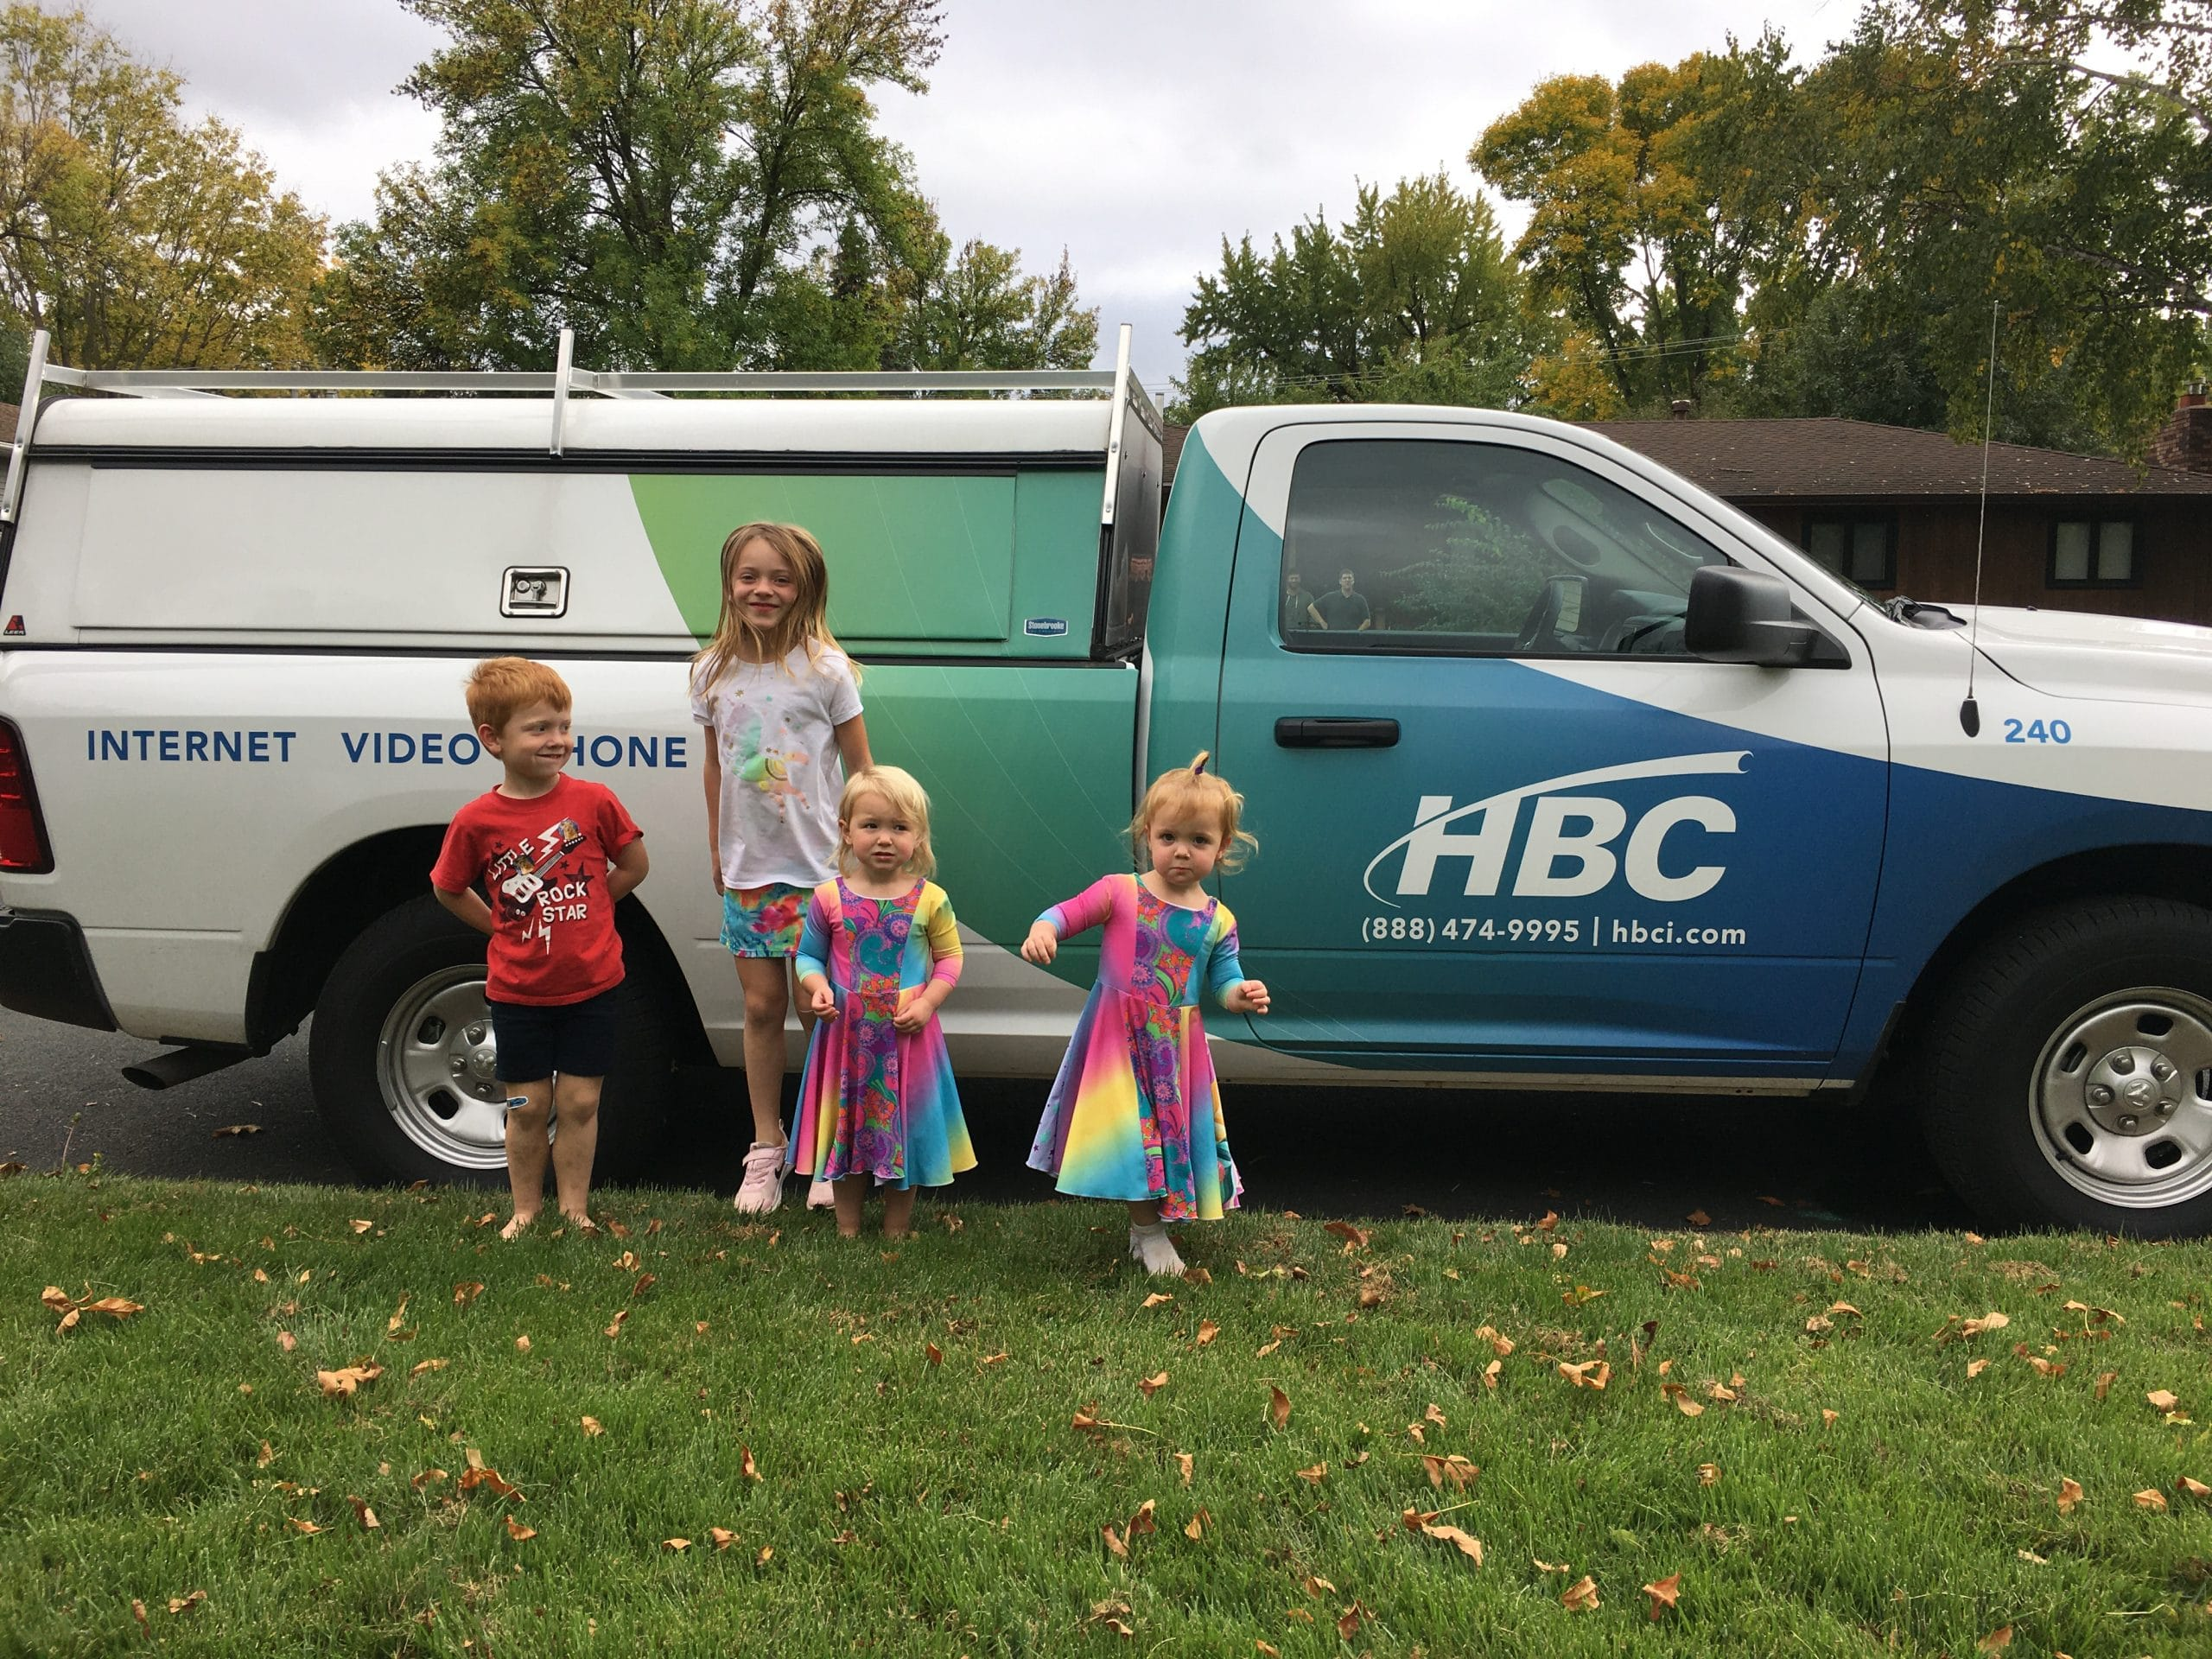 The Ochs' kids with the HBC truck.